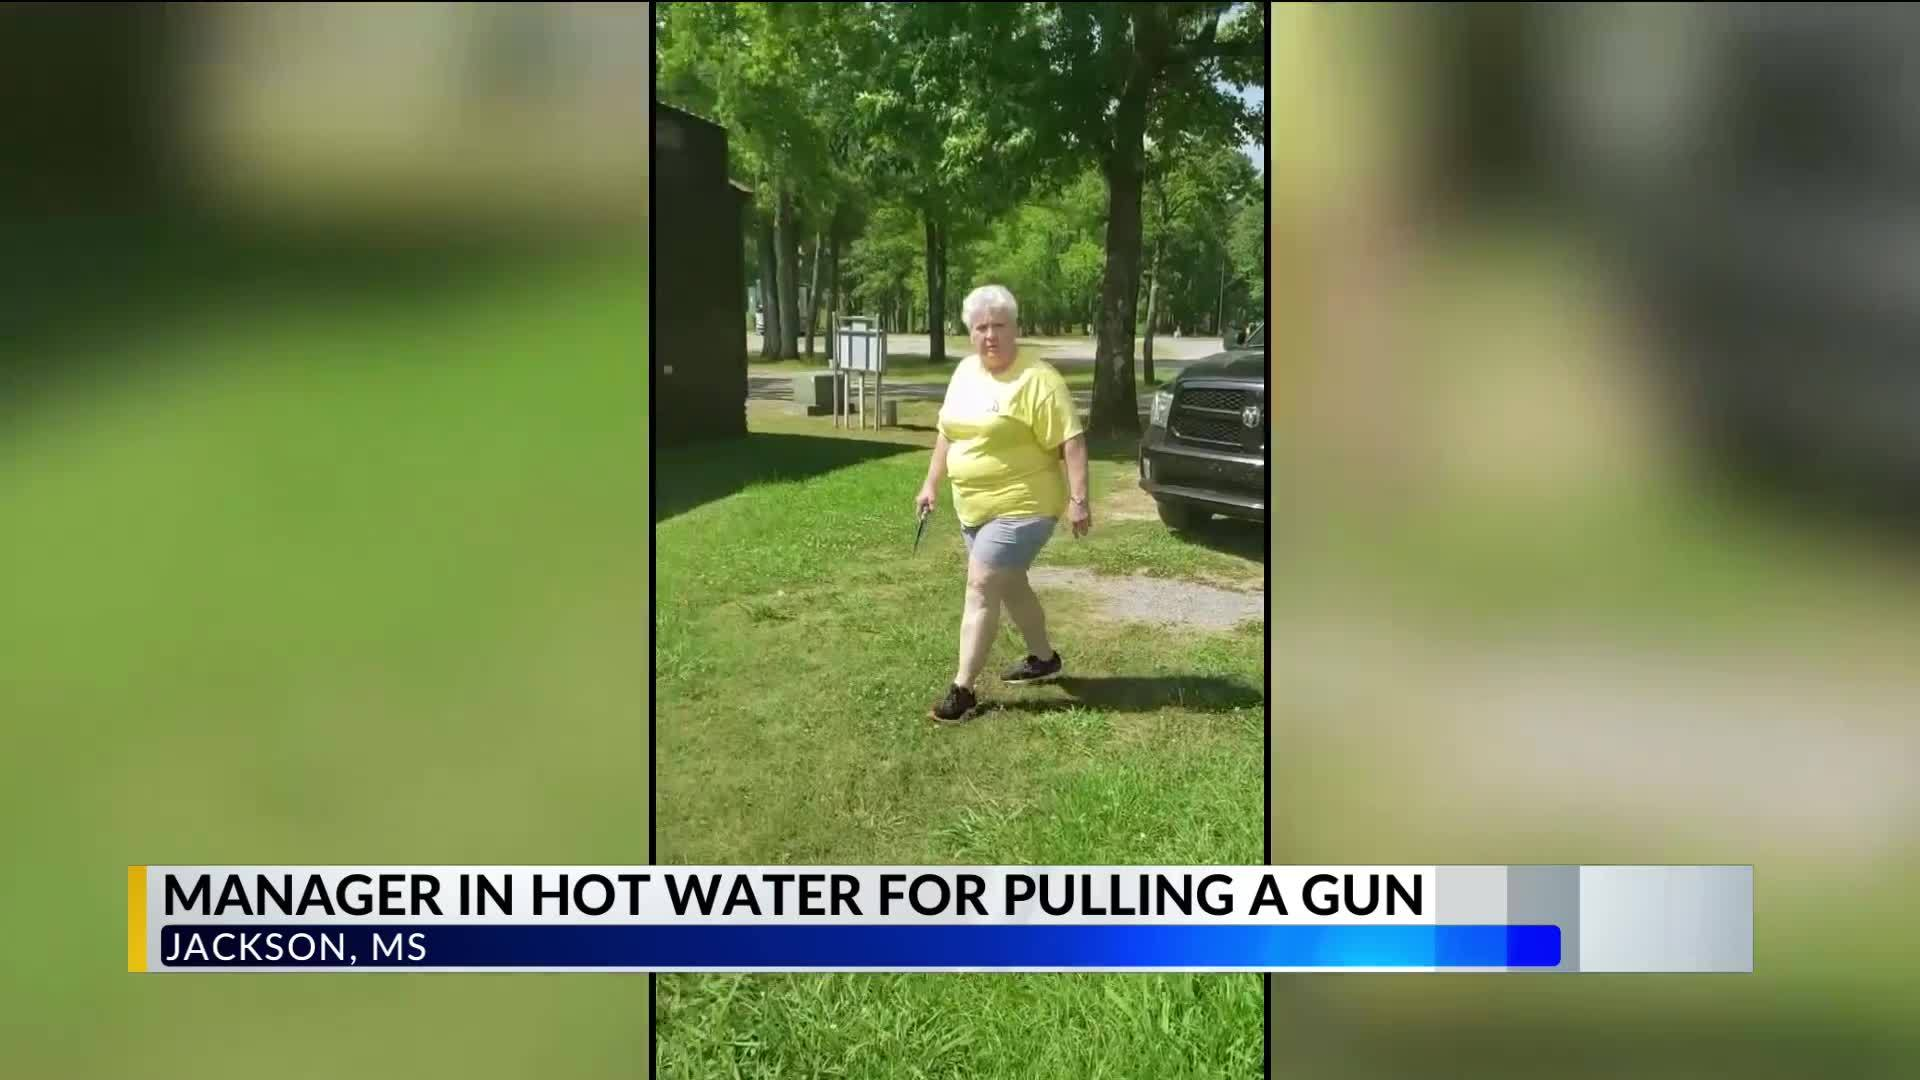 Mississippi_woman_pulls_a_gun_on_african_6_20190529223650